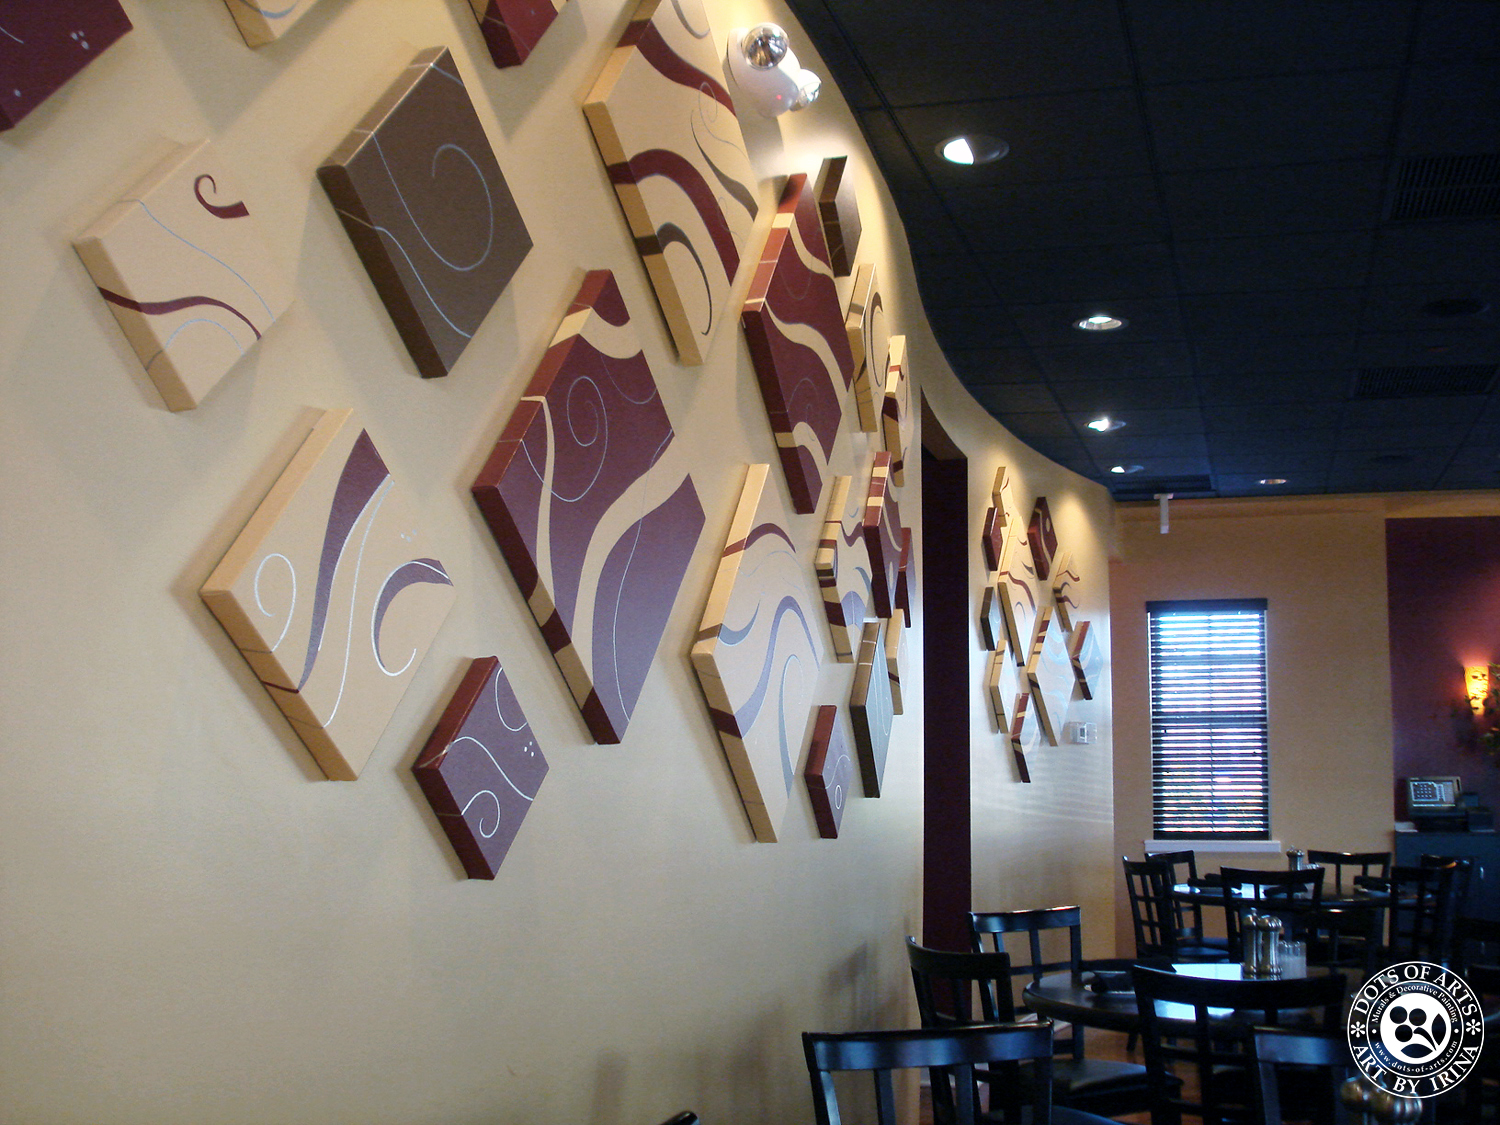 murals-nj-commercial-wall-decor-canvases-decorative-painting-restaurant-custom-color-dots-of-arts-01.jpg